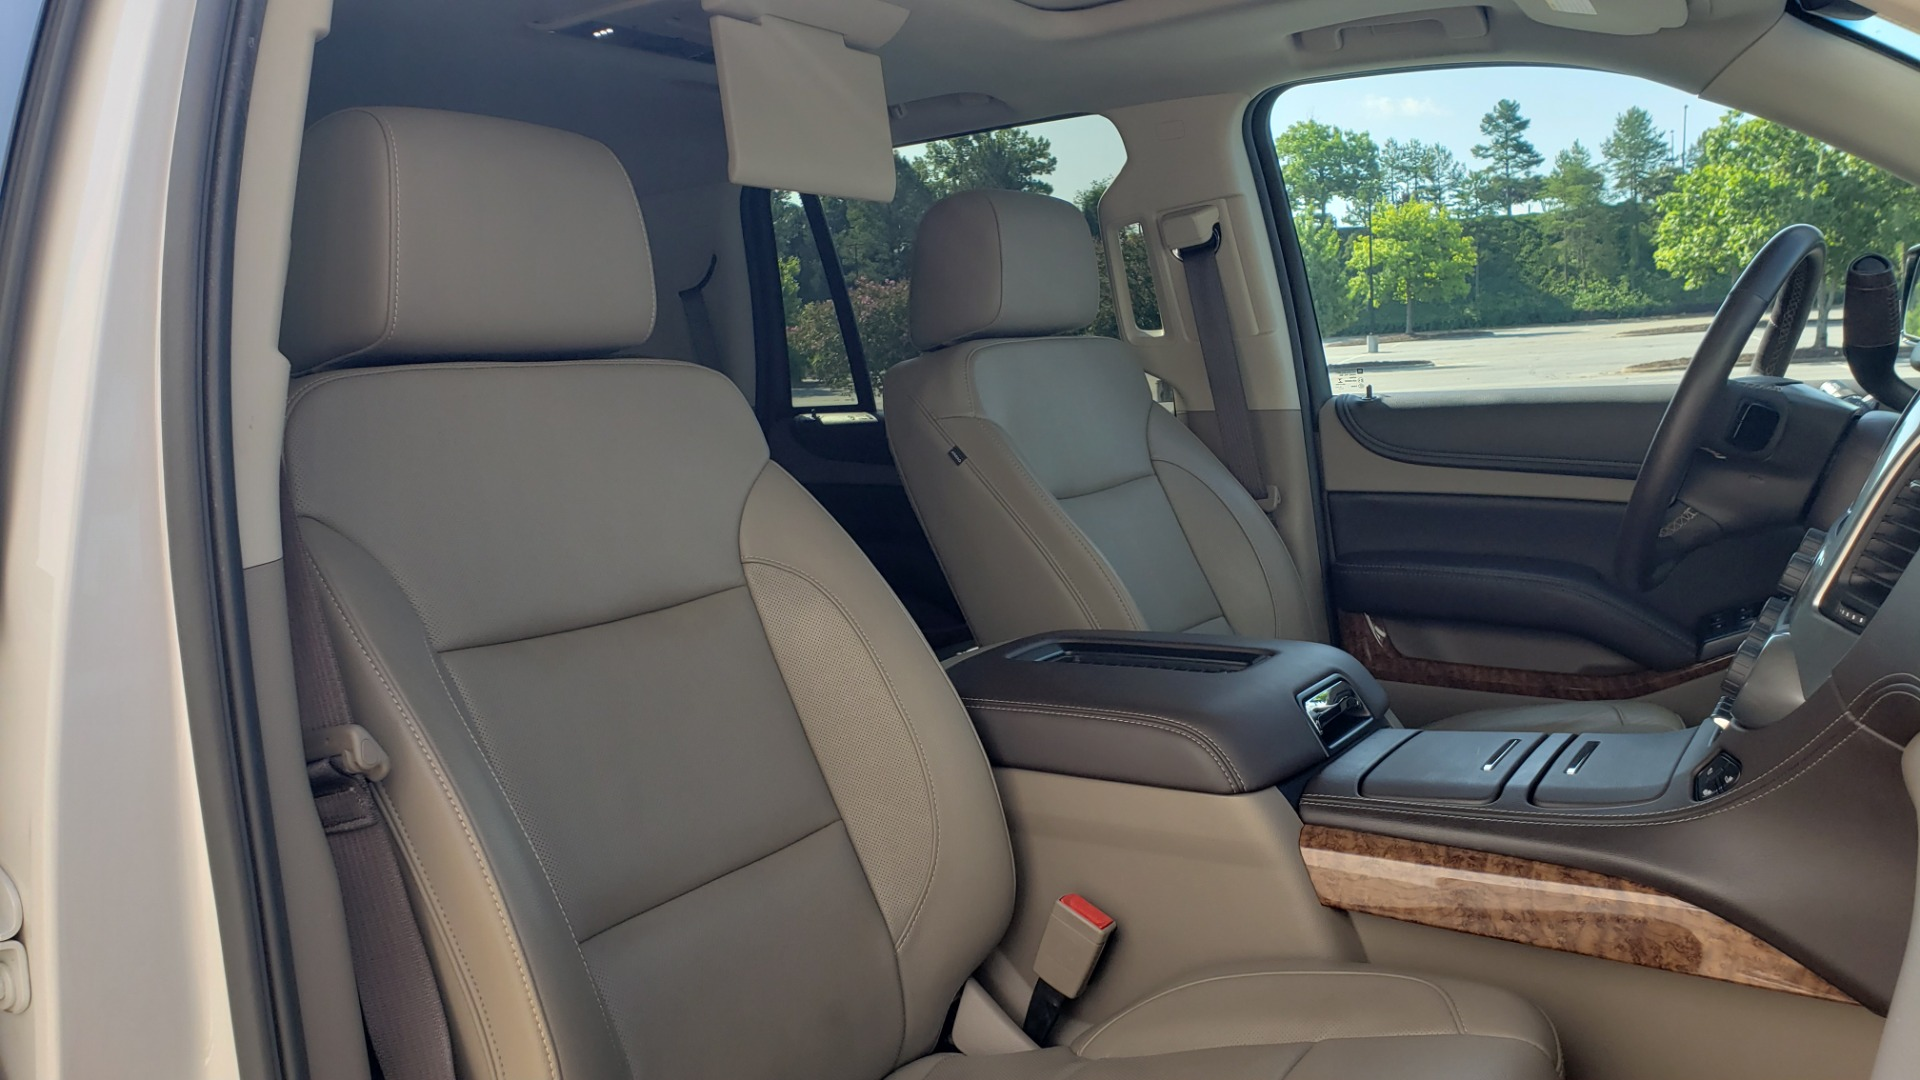 Used 2018 Chevrolet TAHOE PREMIER 4X4 / NAV / BOSE / SUNROOF / ENT SYS / 3-ROW / REARVIEW for sale $55,995 at Formula Imports in Charlotte NC 28227 69